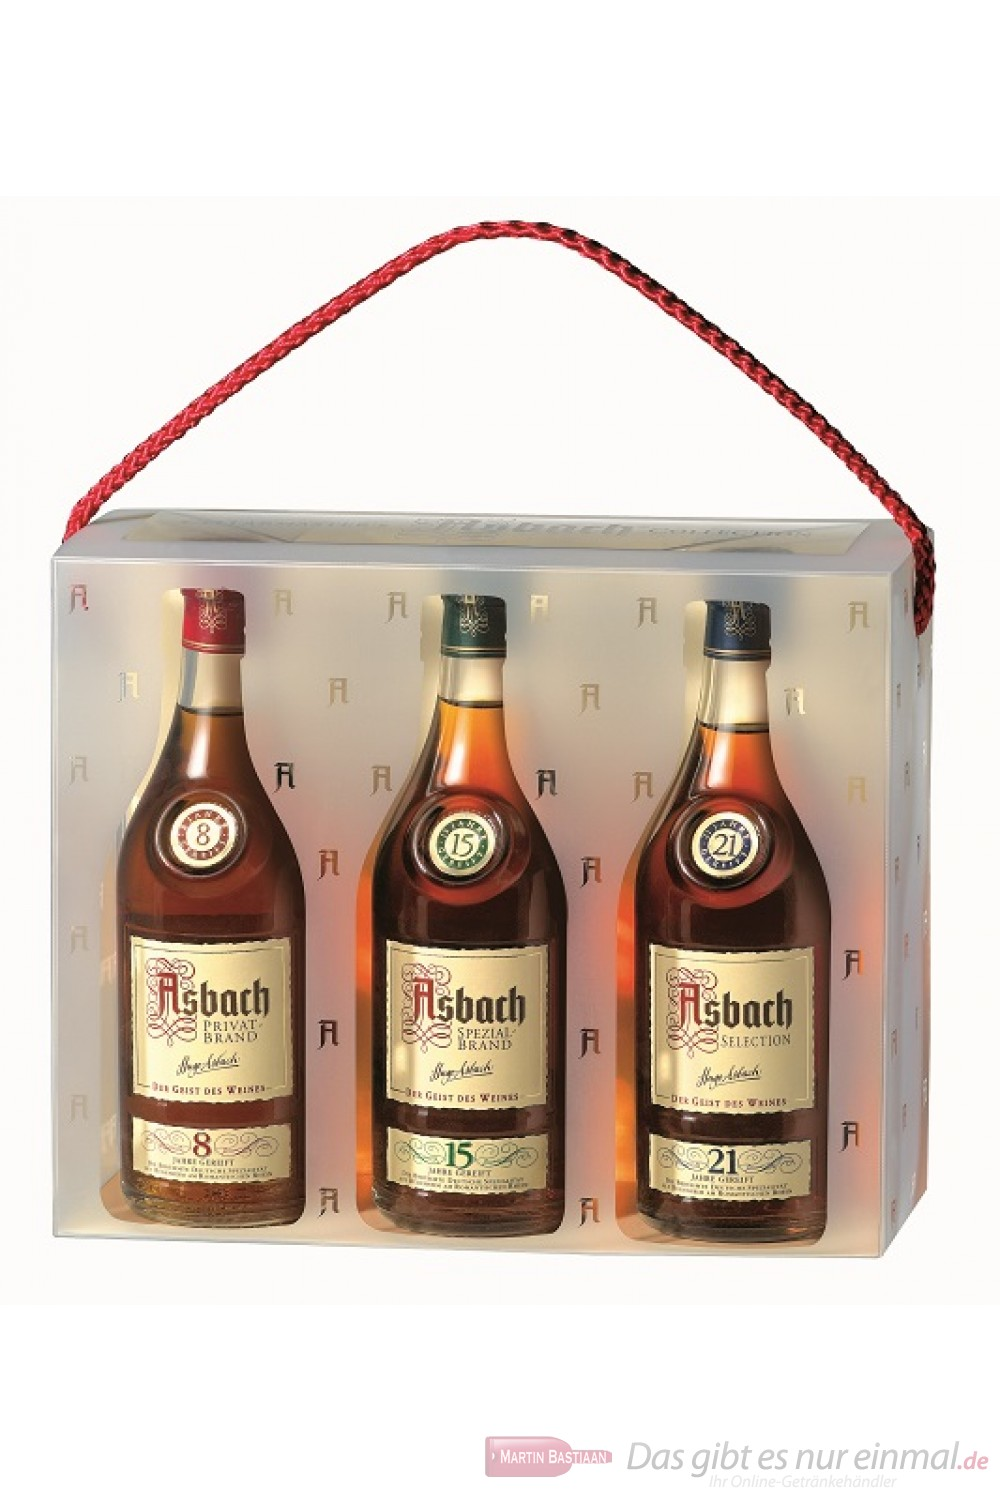 Asbach Uralt Cellarmaster's Collection